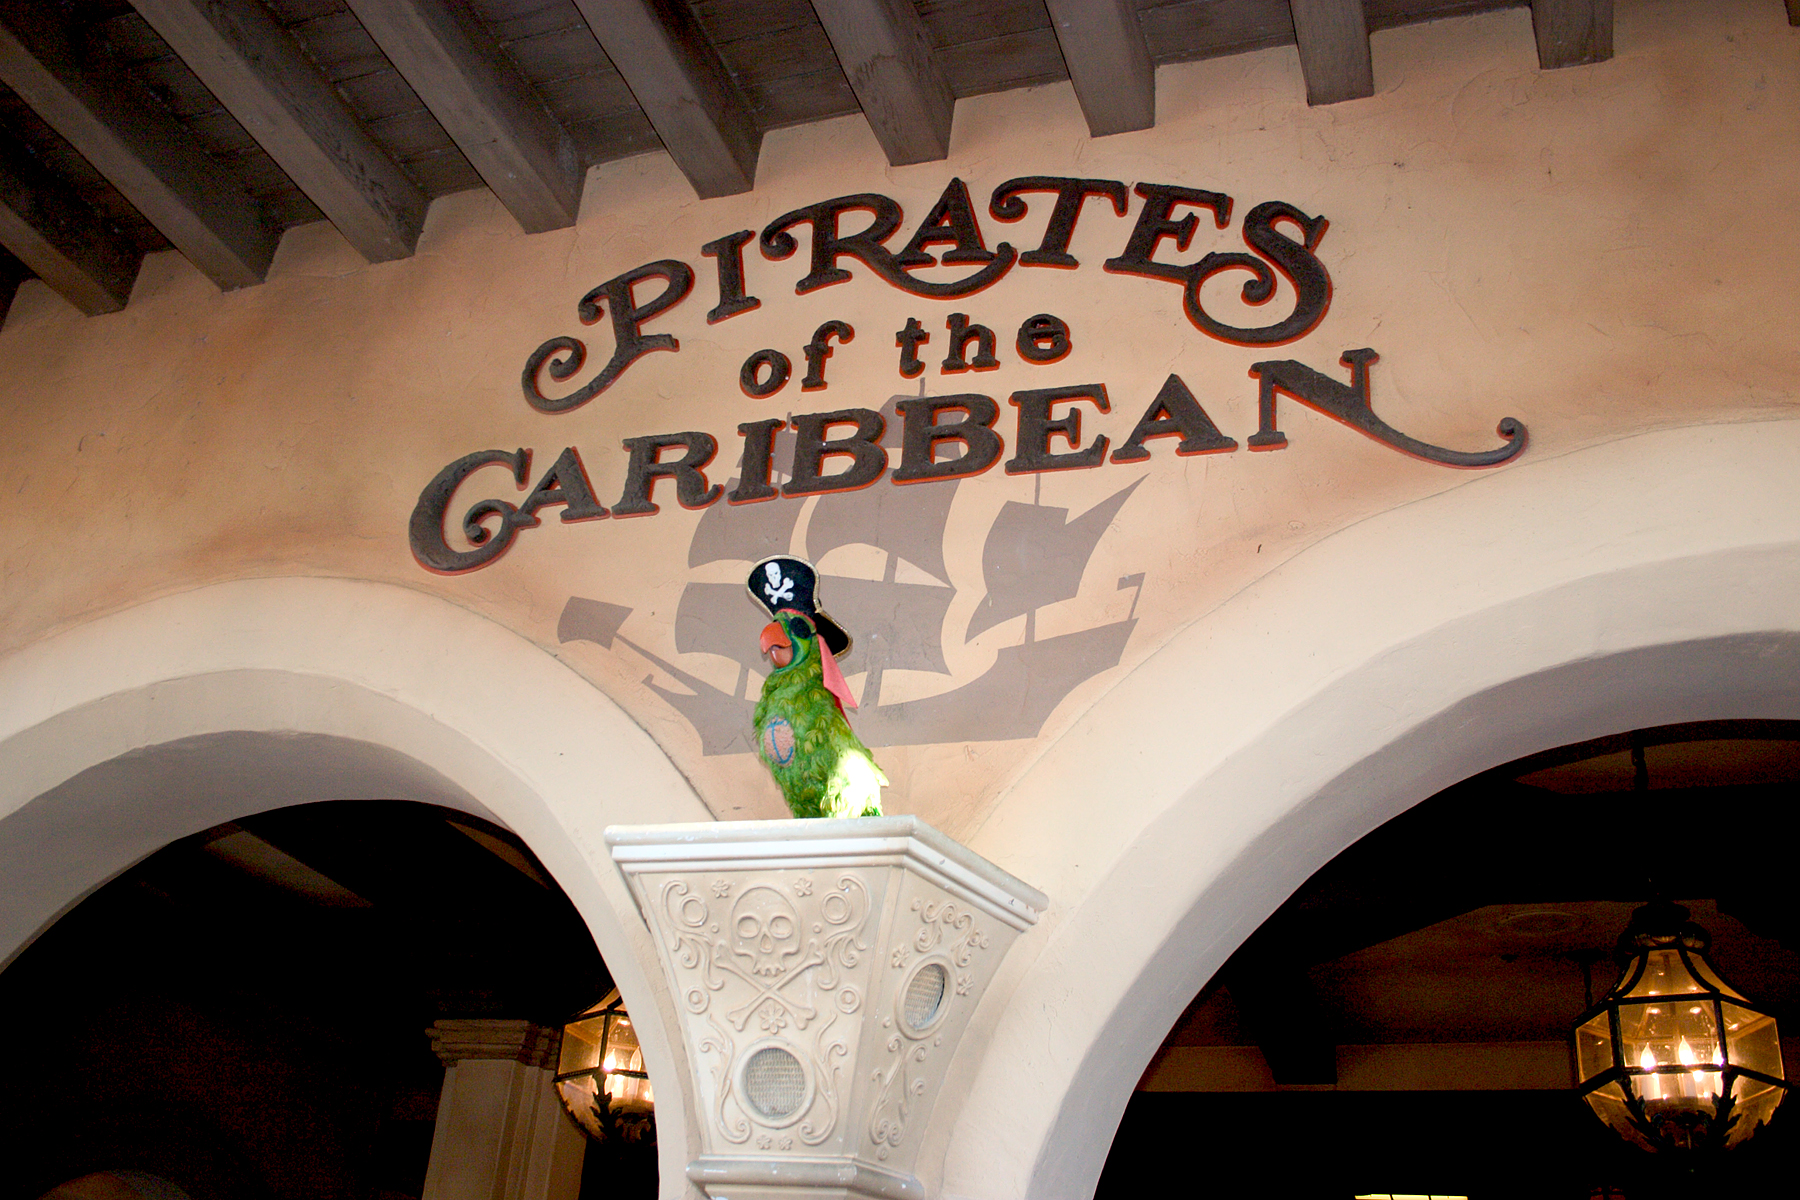 File:Pirates of the Caribbean Parrot.jpg - Wikipedia